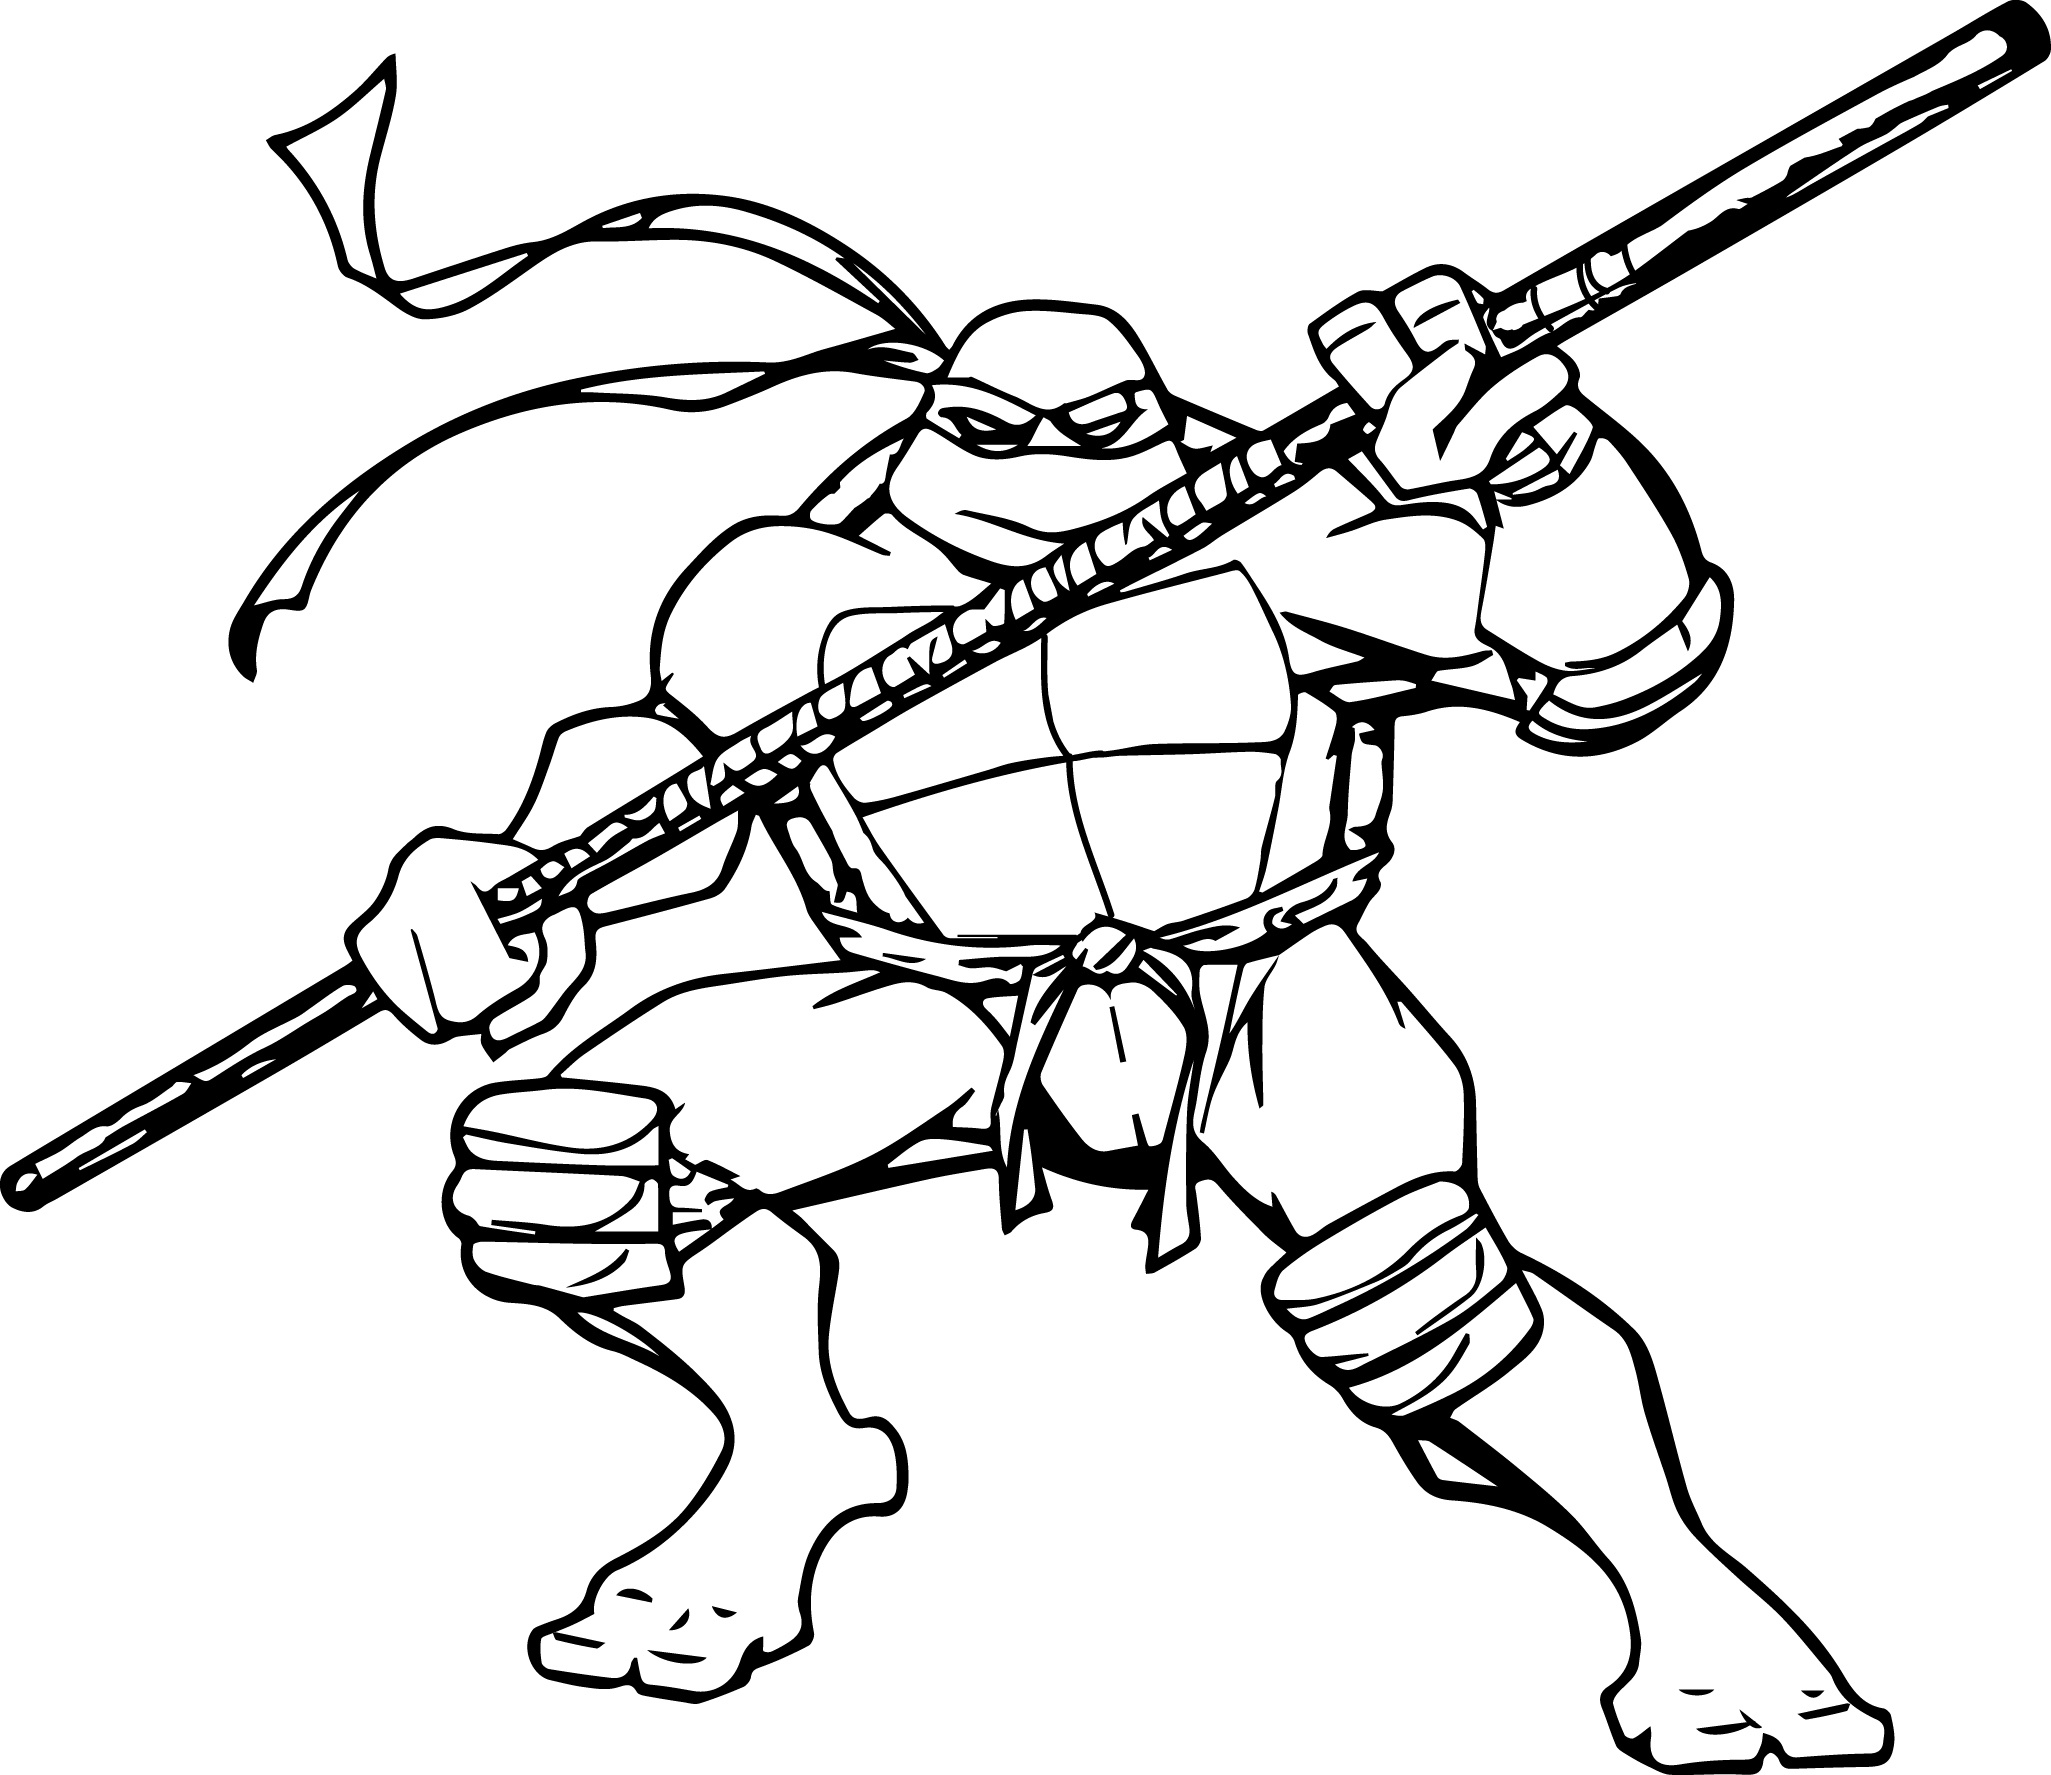 Ninja Turtle Coloring Pages To Print At Getdrawings Com Free For